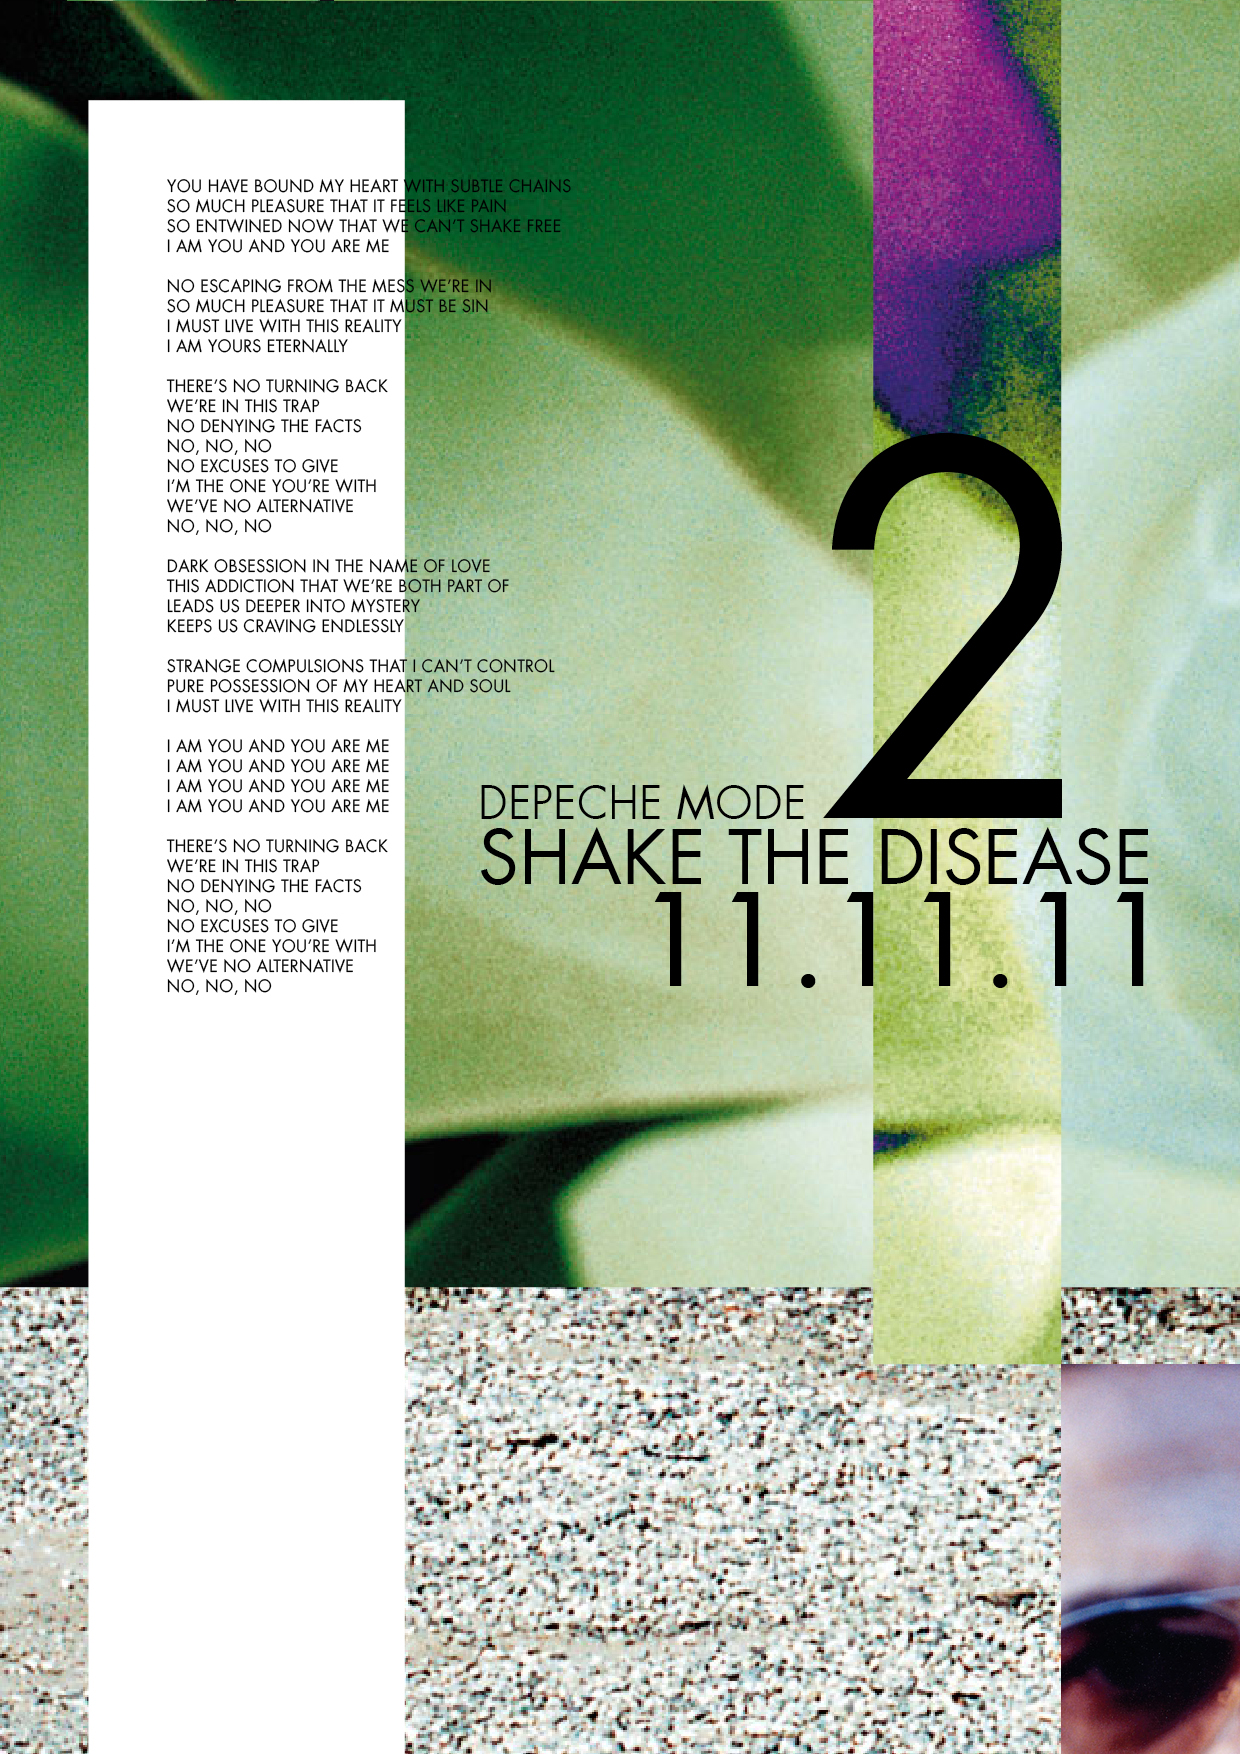 http://www.shakethedisease.fr/teasings/exciter.jpg